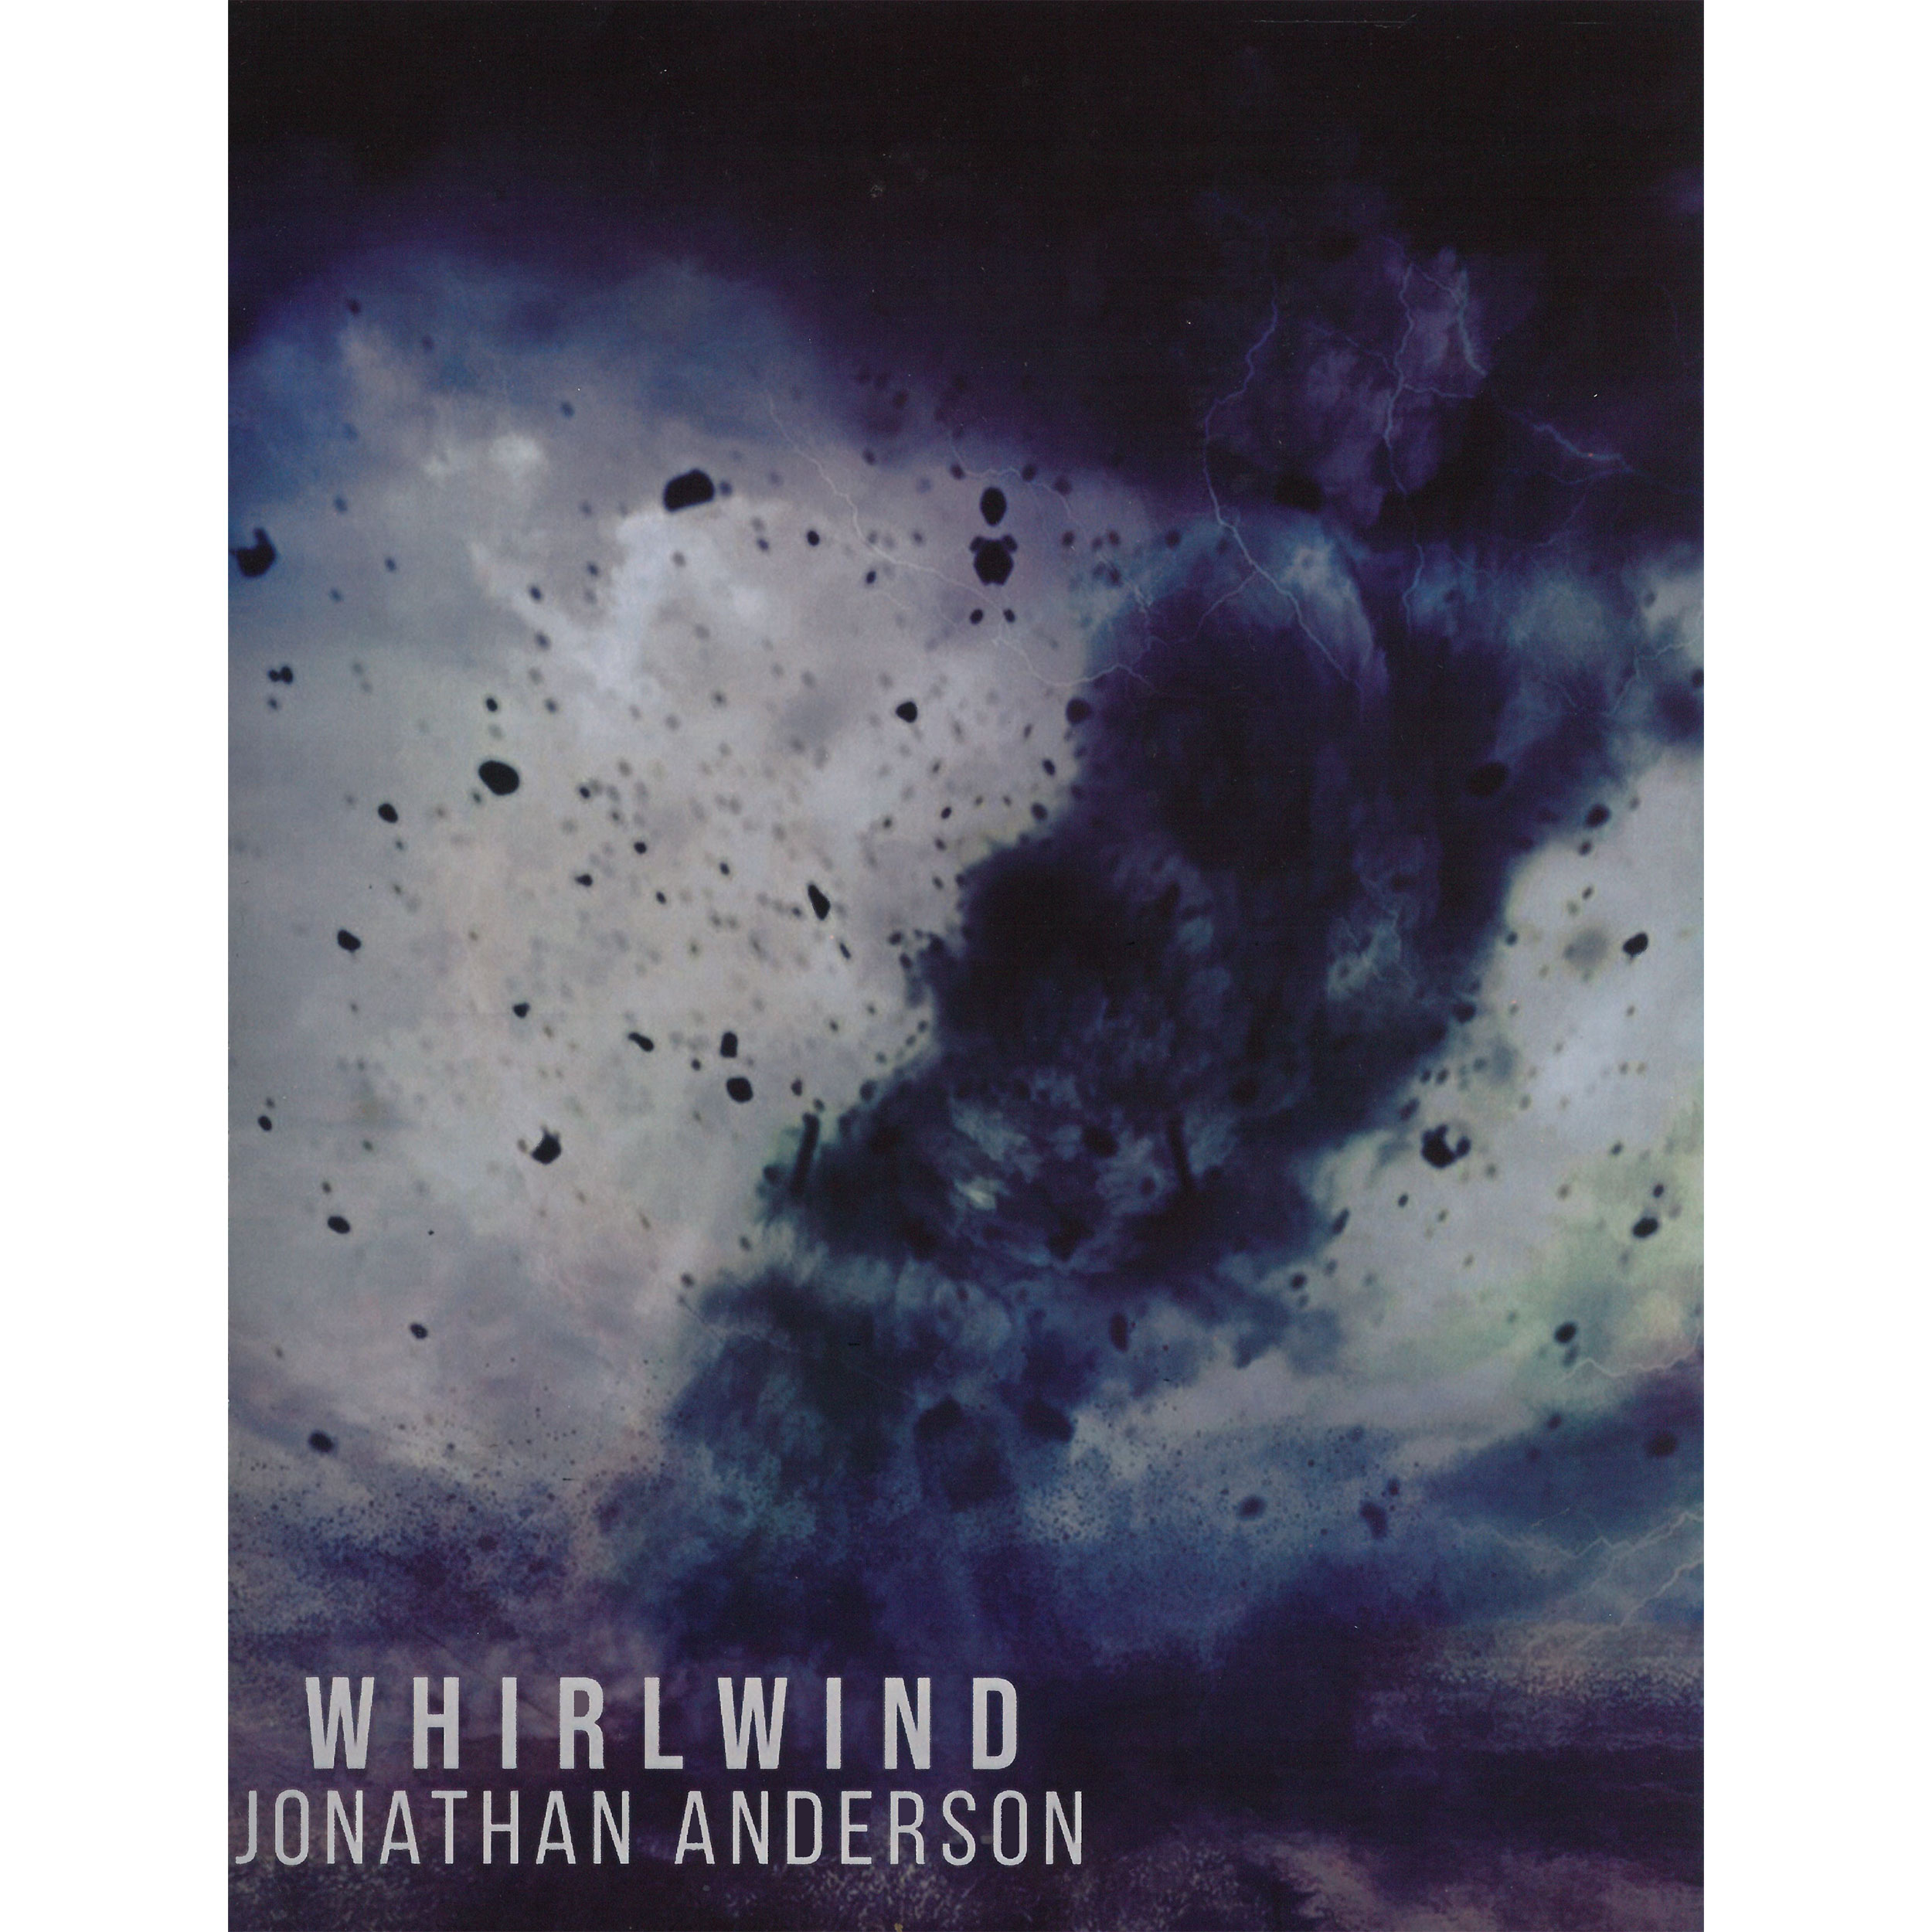 Whirlwind by Jonathan Anderson